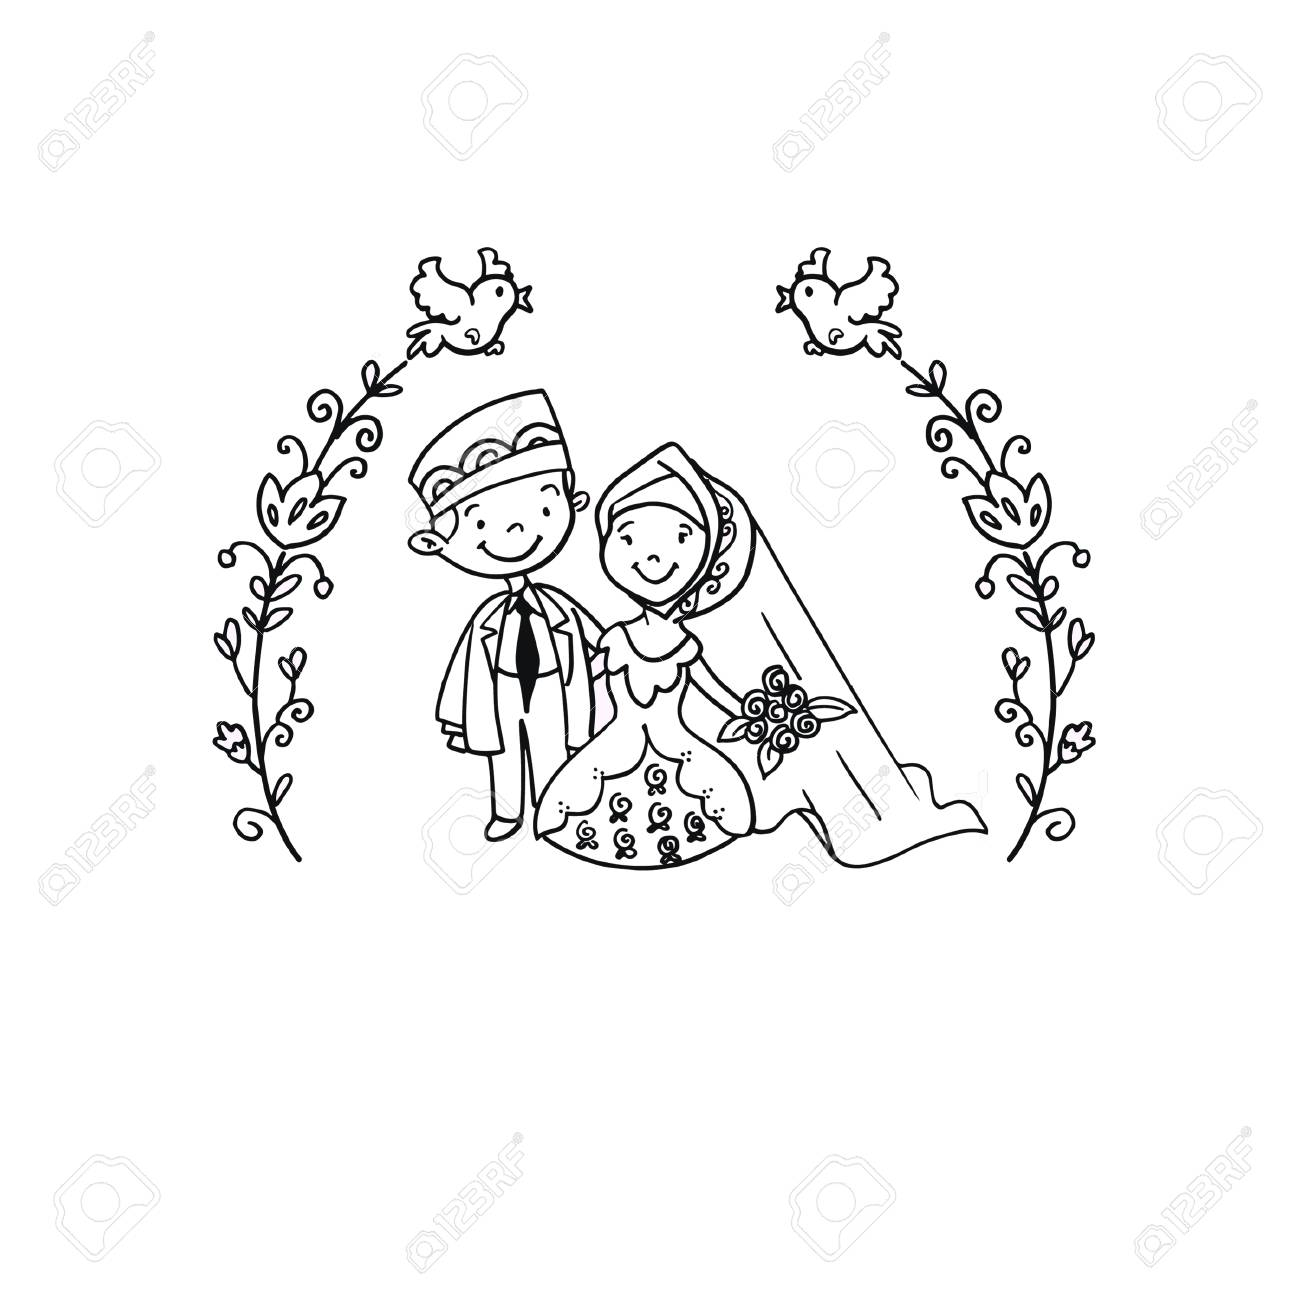 A Vector Creative Illustration Coloring Book With Moslem Wedding Couple